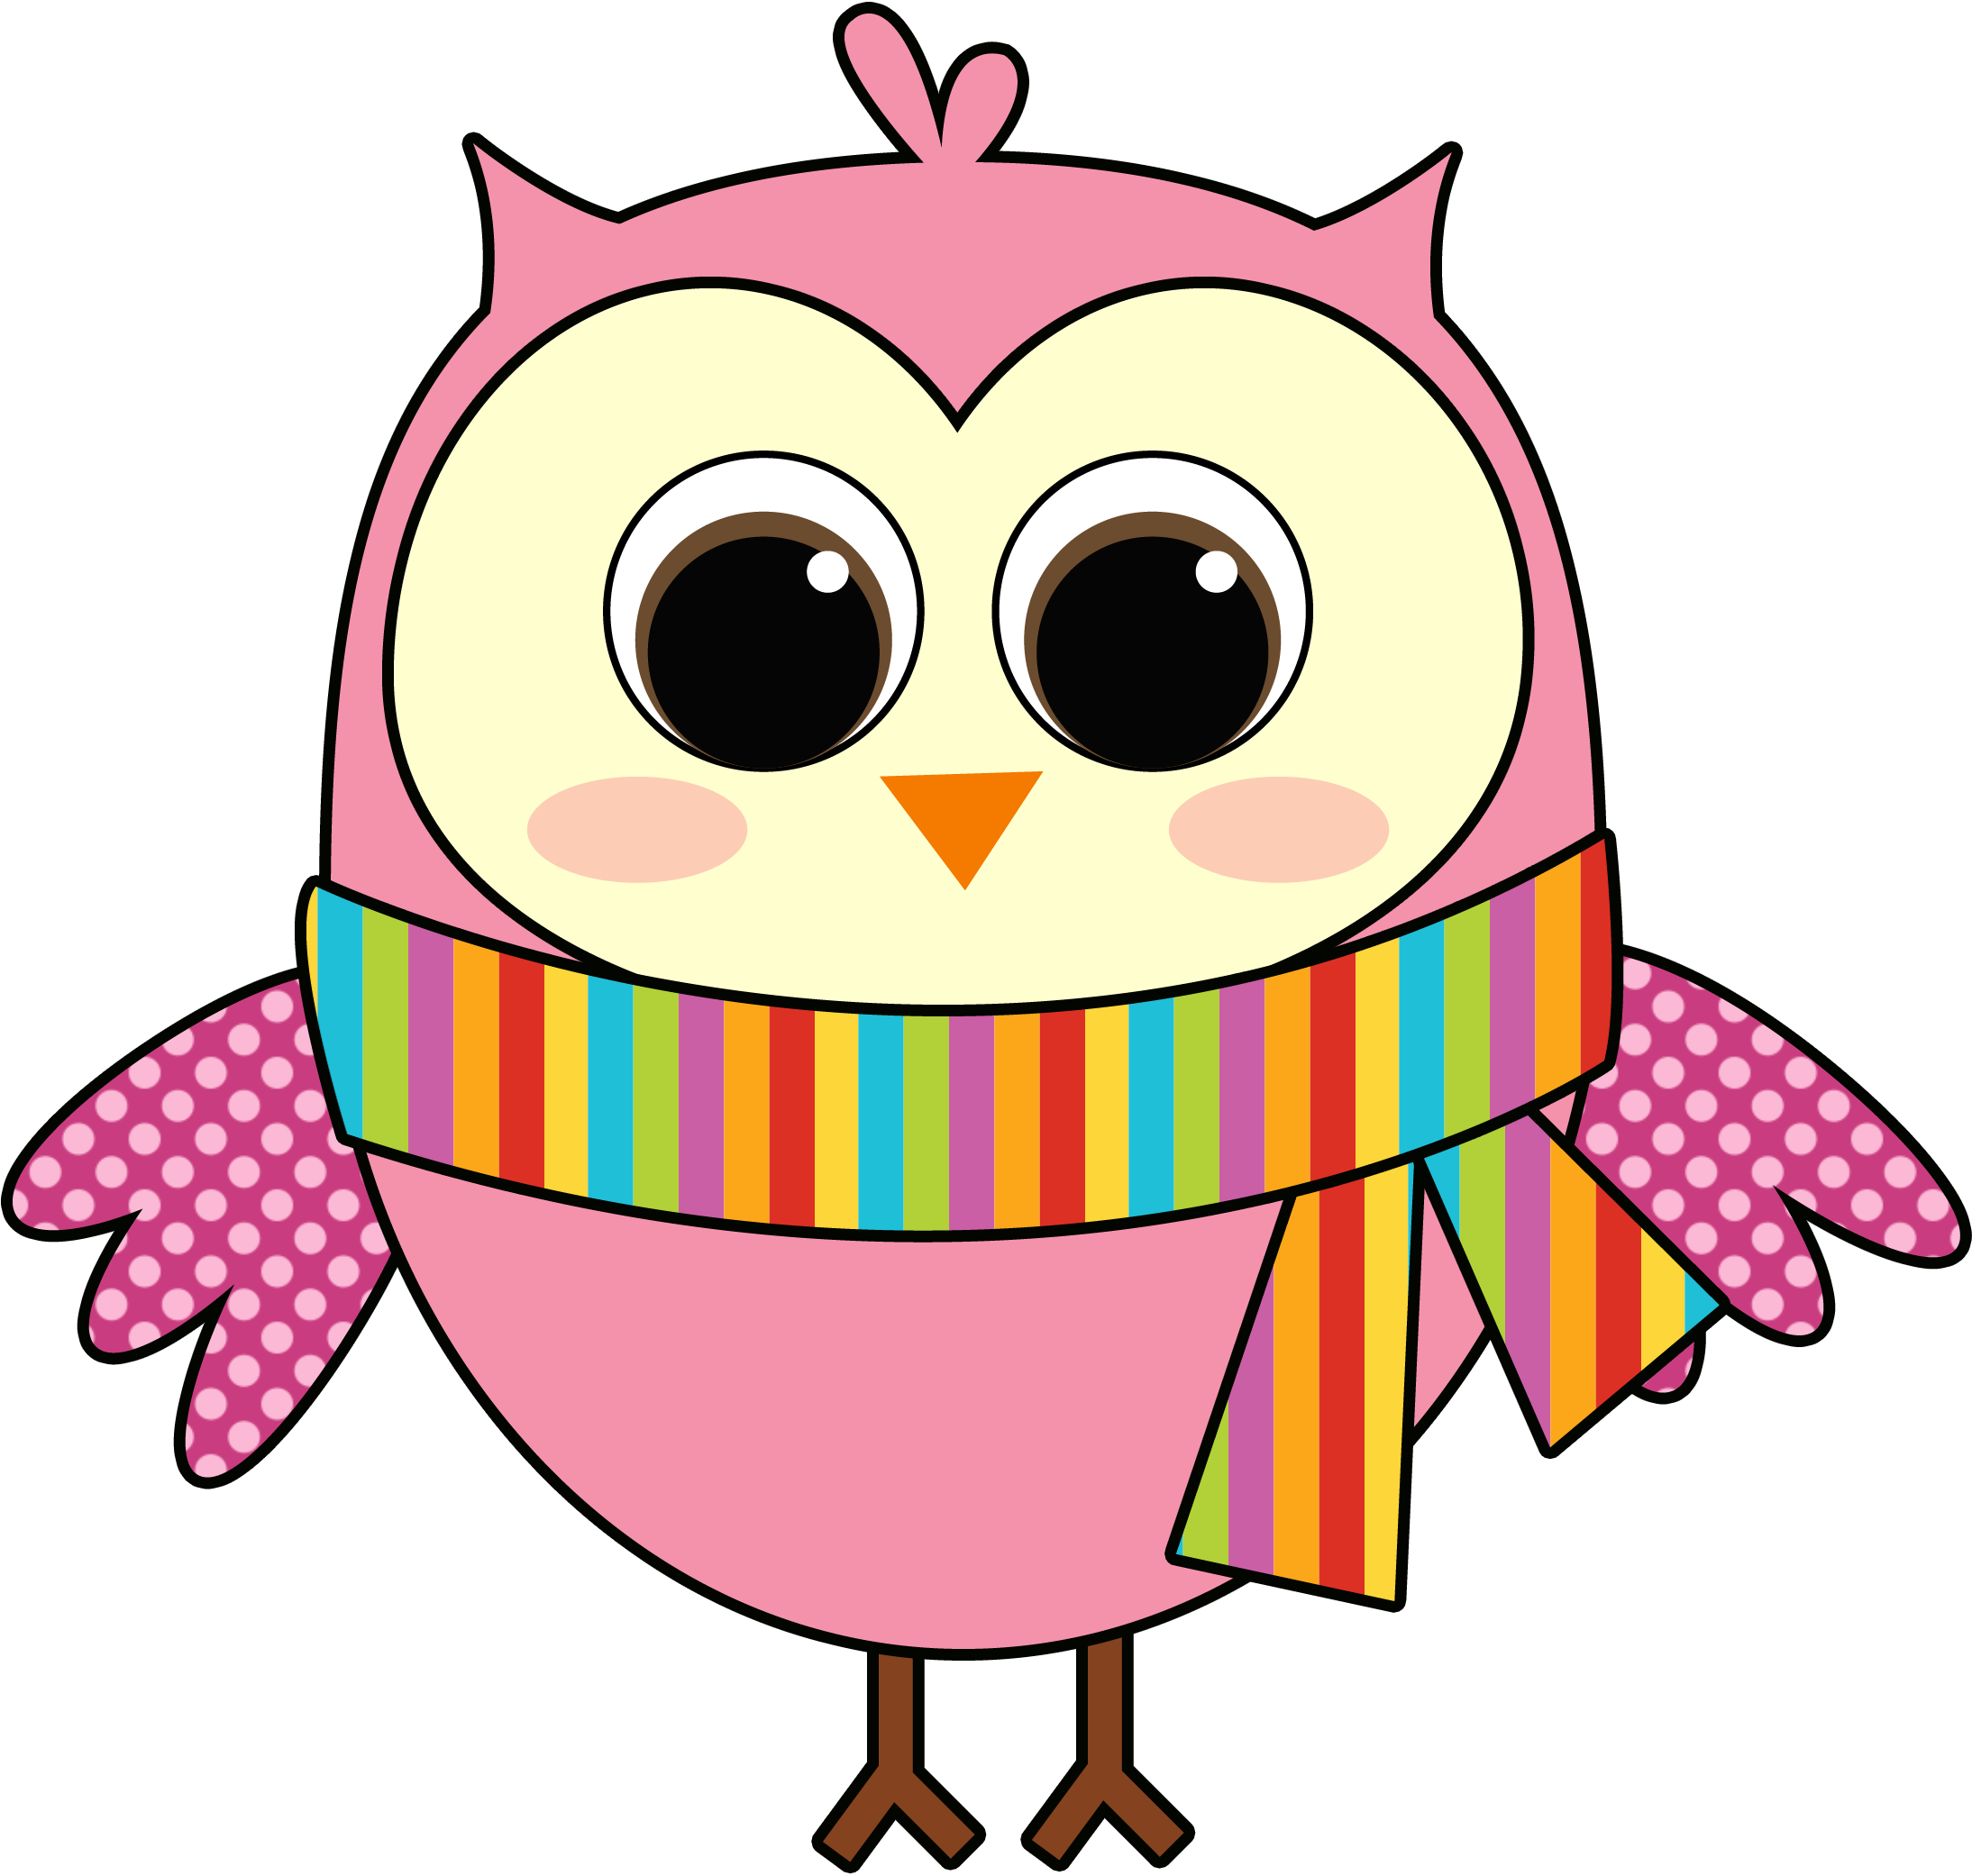 Fathers clipart owl. Photo by daniellemoraesfalcao minus